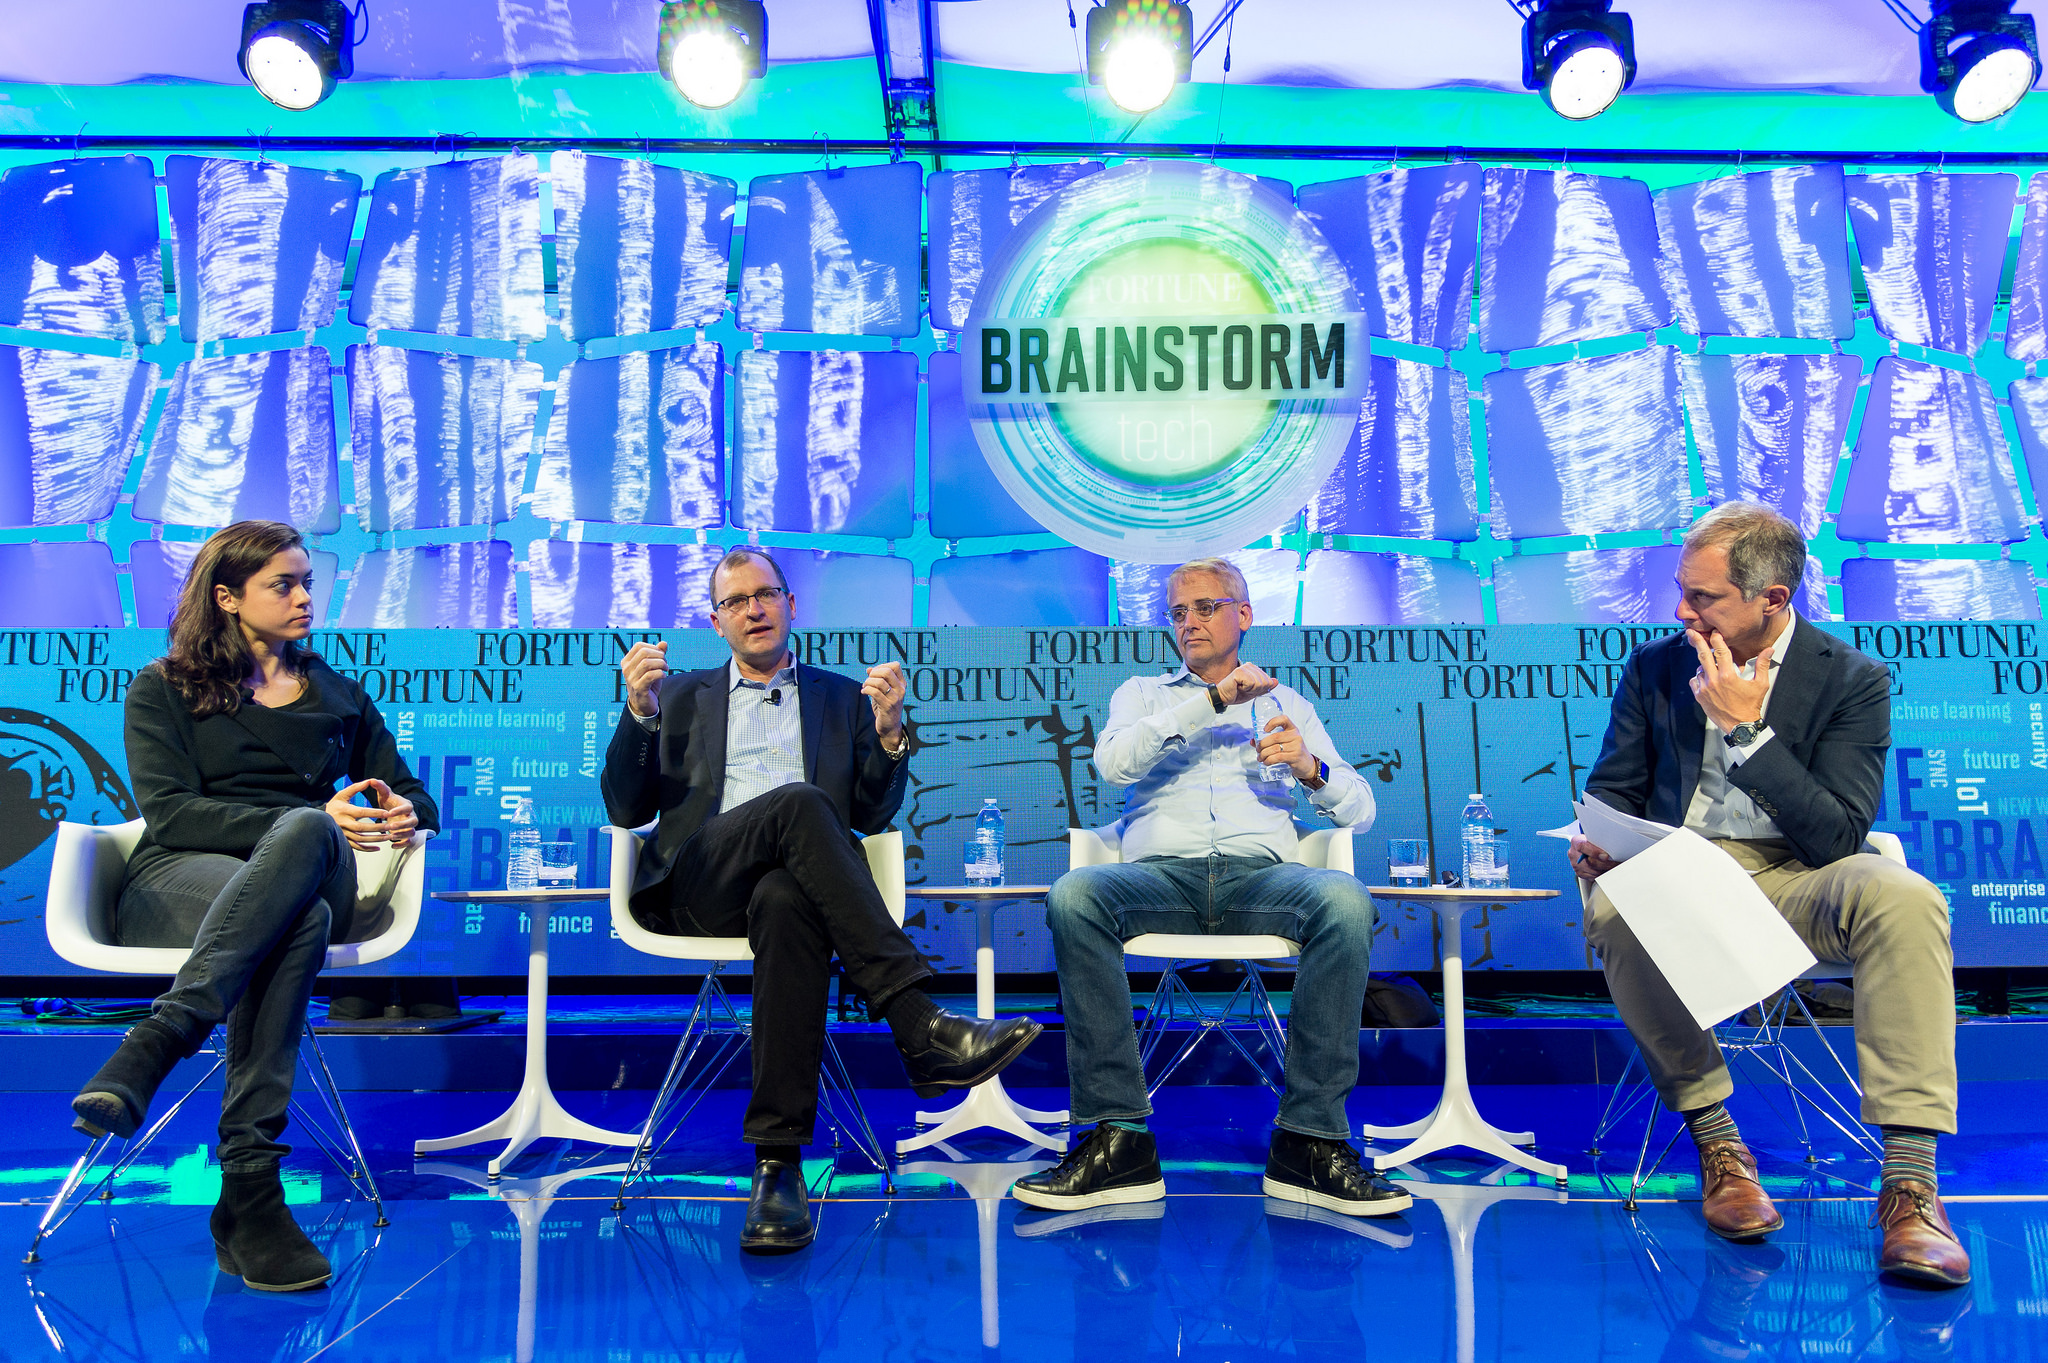 Shivon Zilis, partner, Bloomberg Beta; David Mindell, professor at MIT and co-founder and CEO, Humantics; David Kenny, general manager, IBM Watson; and moderator Adam Lashinsky, Fortune, at Brainstorm Tech 2016.